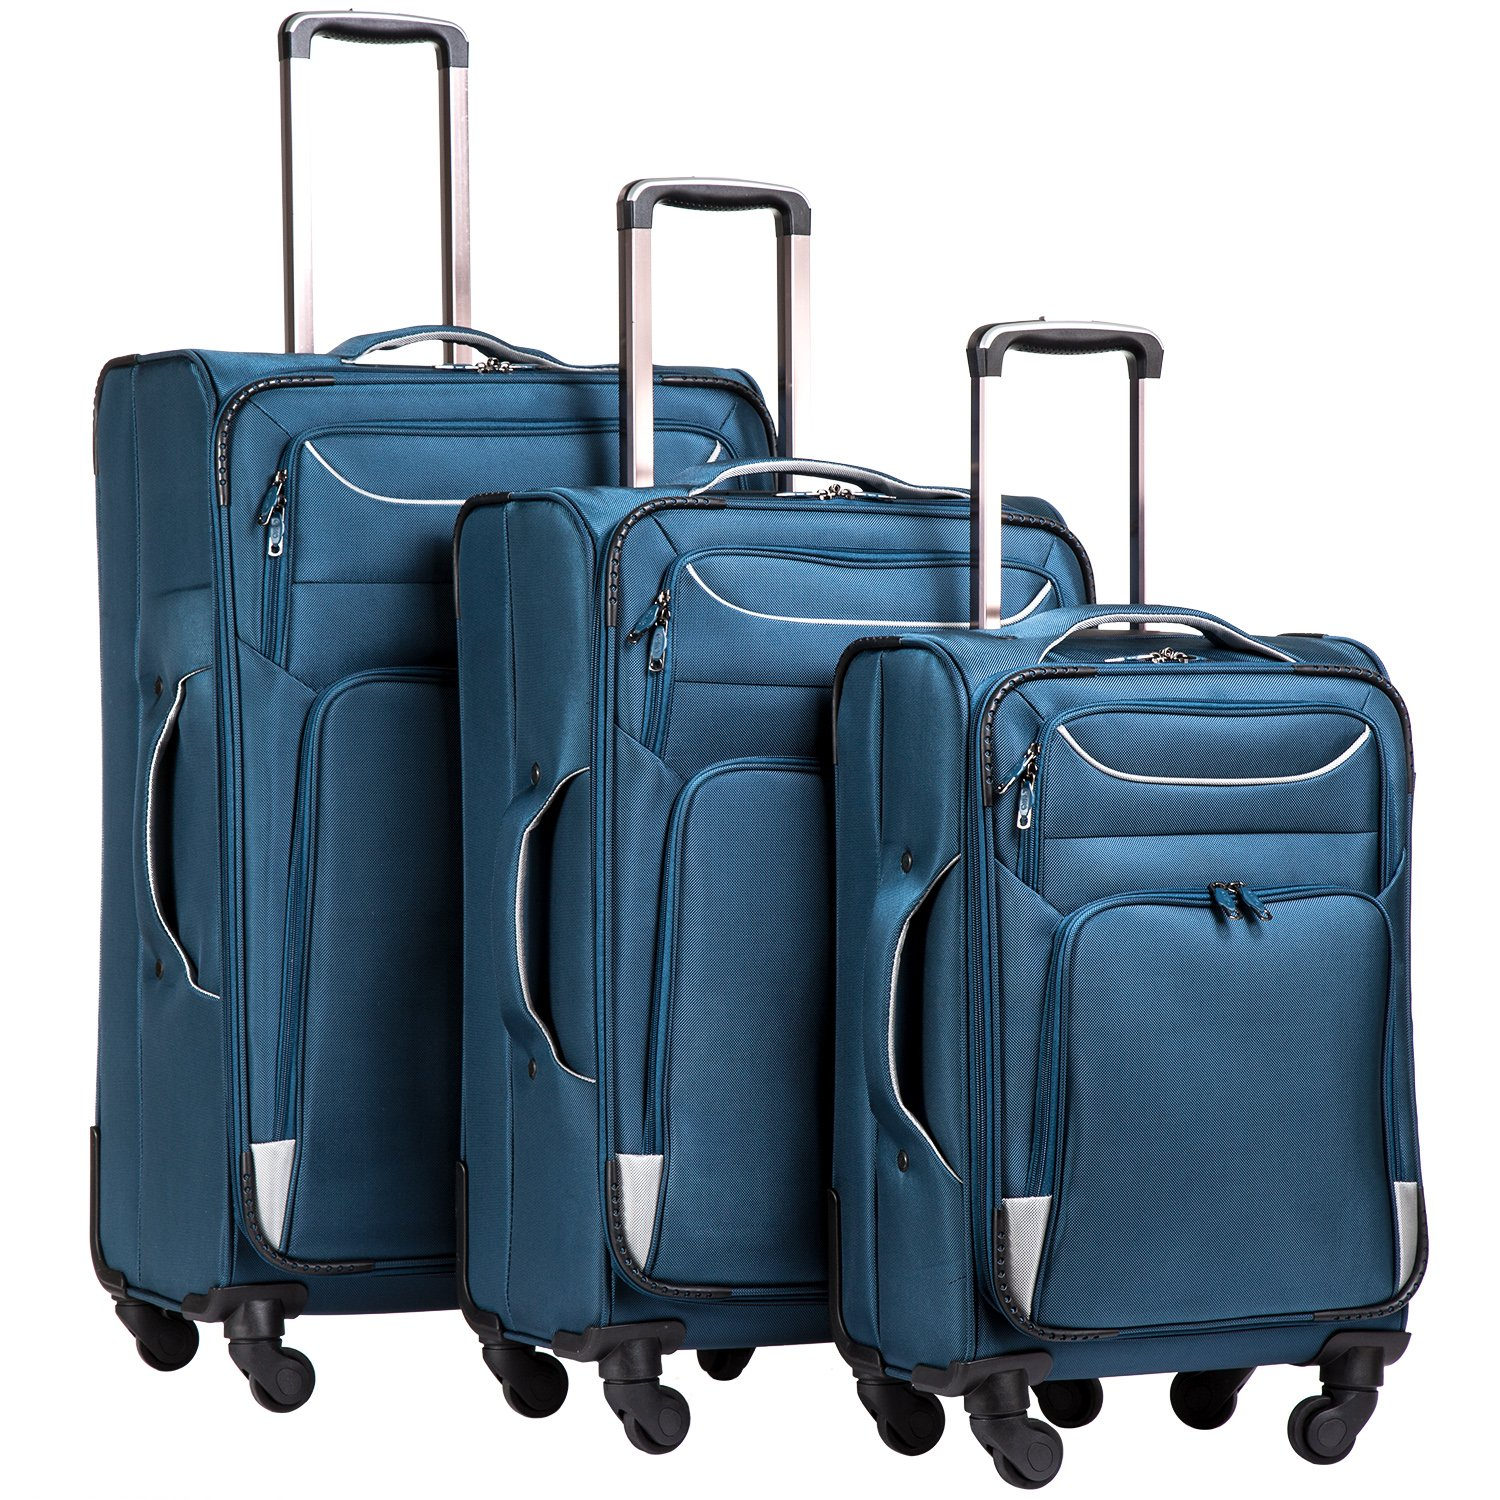 Coolife Luggage 3 Piece Set Suitcase Spinner Softshell lightweight (blue+sliver) by COOLIFE